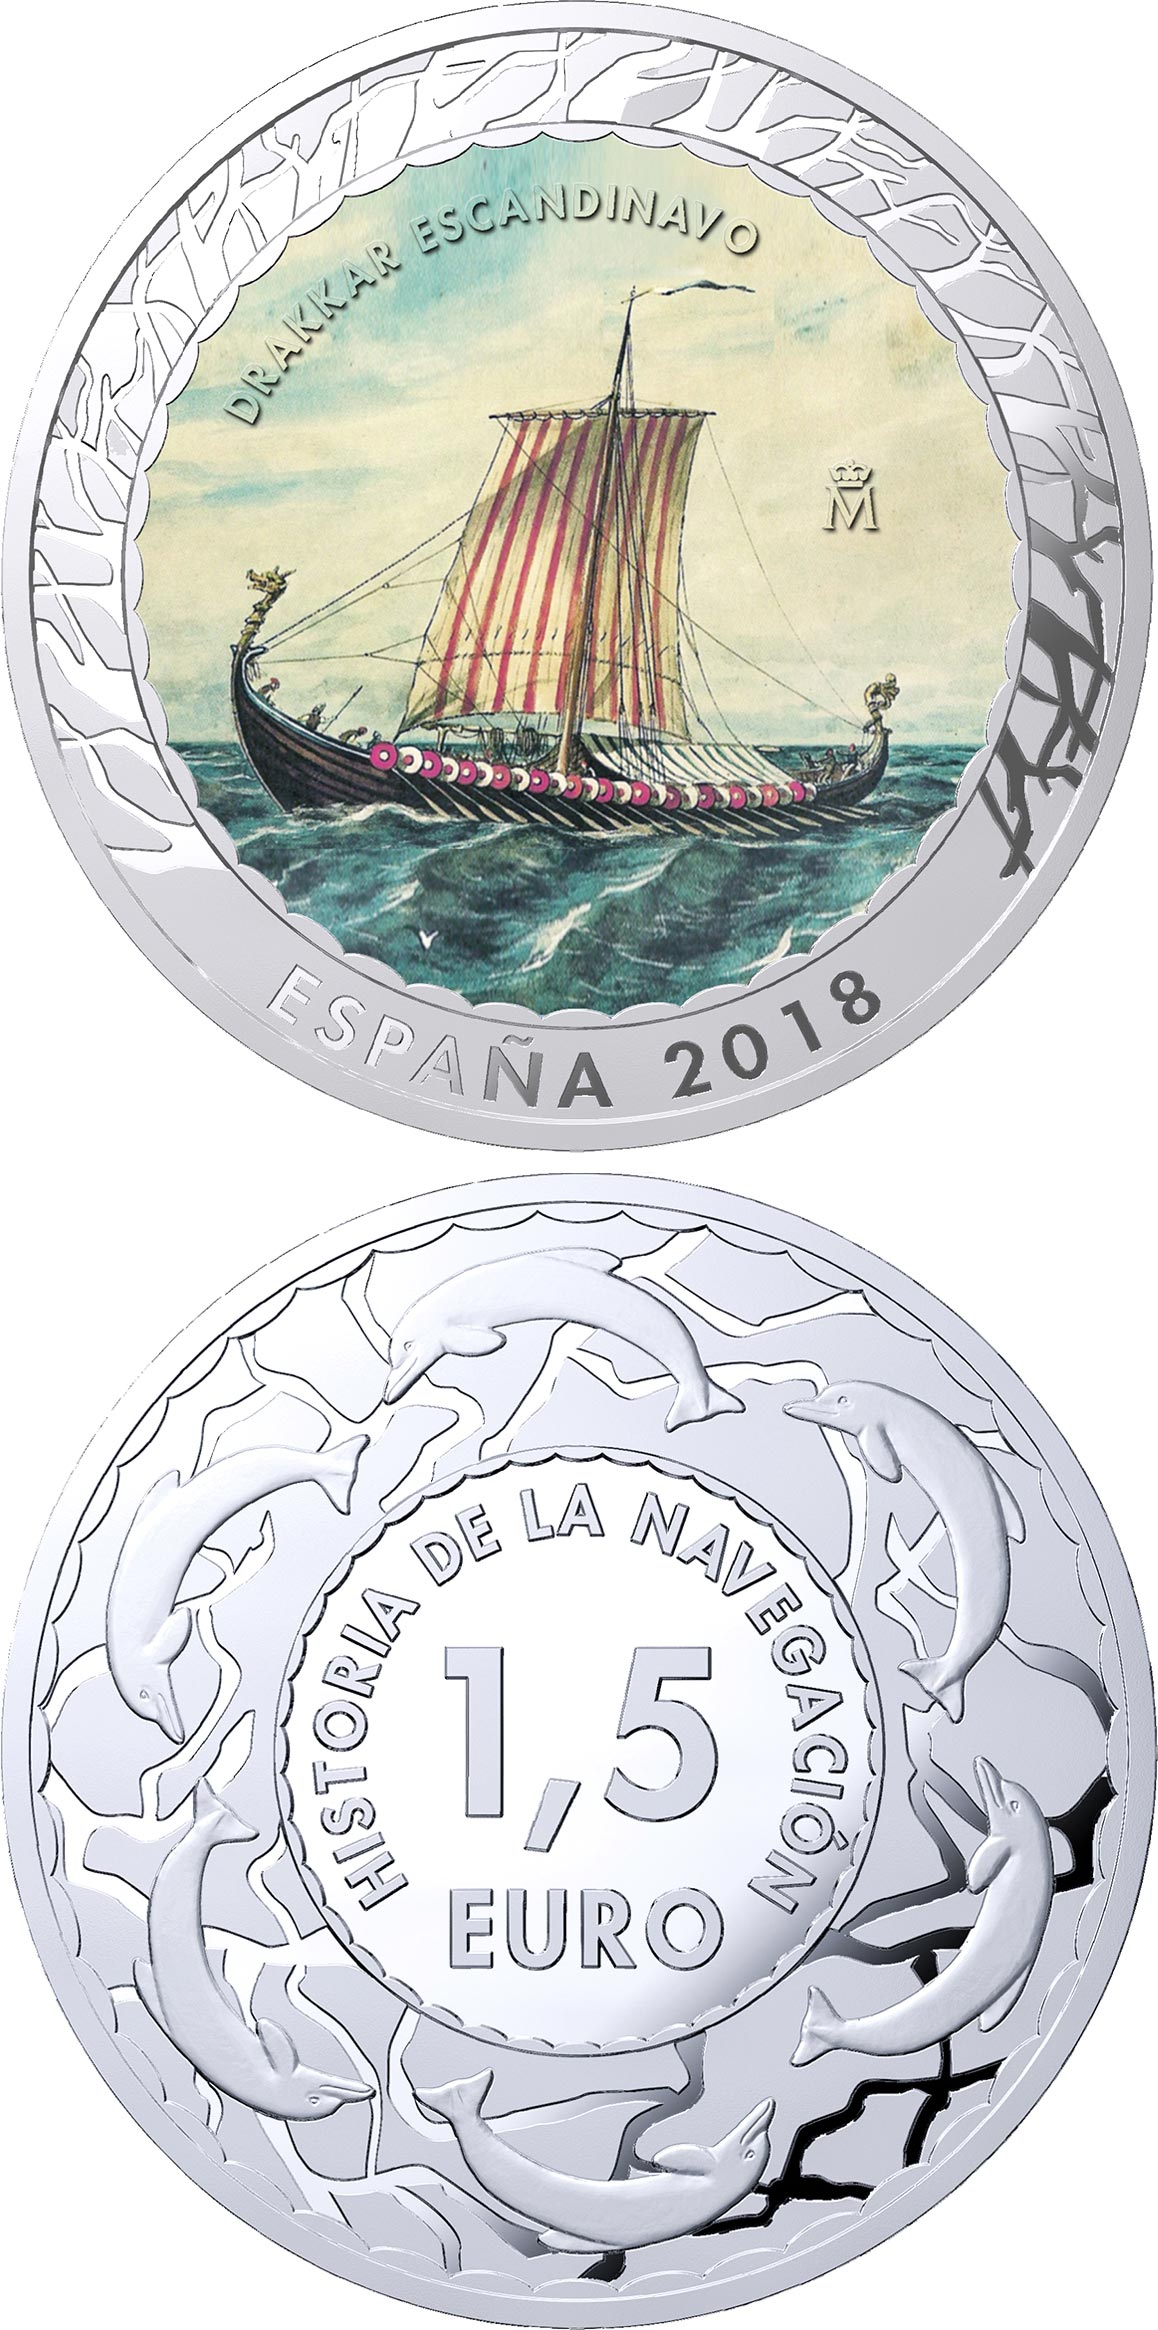 Image of 1.5 euro coin - Scandinavian Drakkar | Spain 2018.  The Copper–Nickel (CuNi) coin is of BU quality.